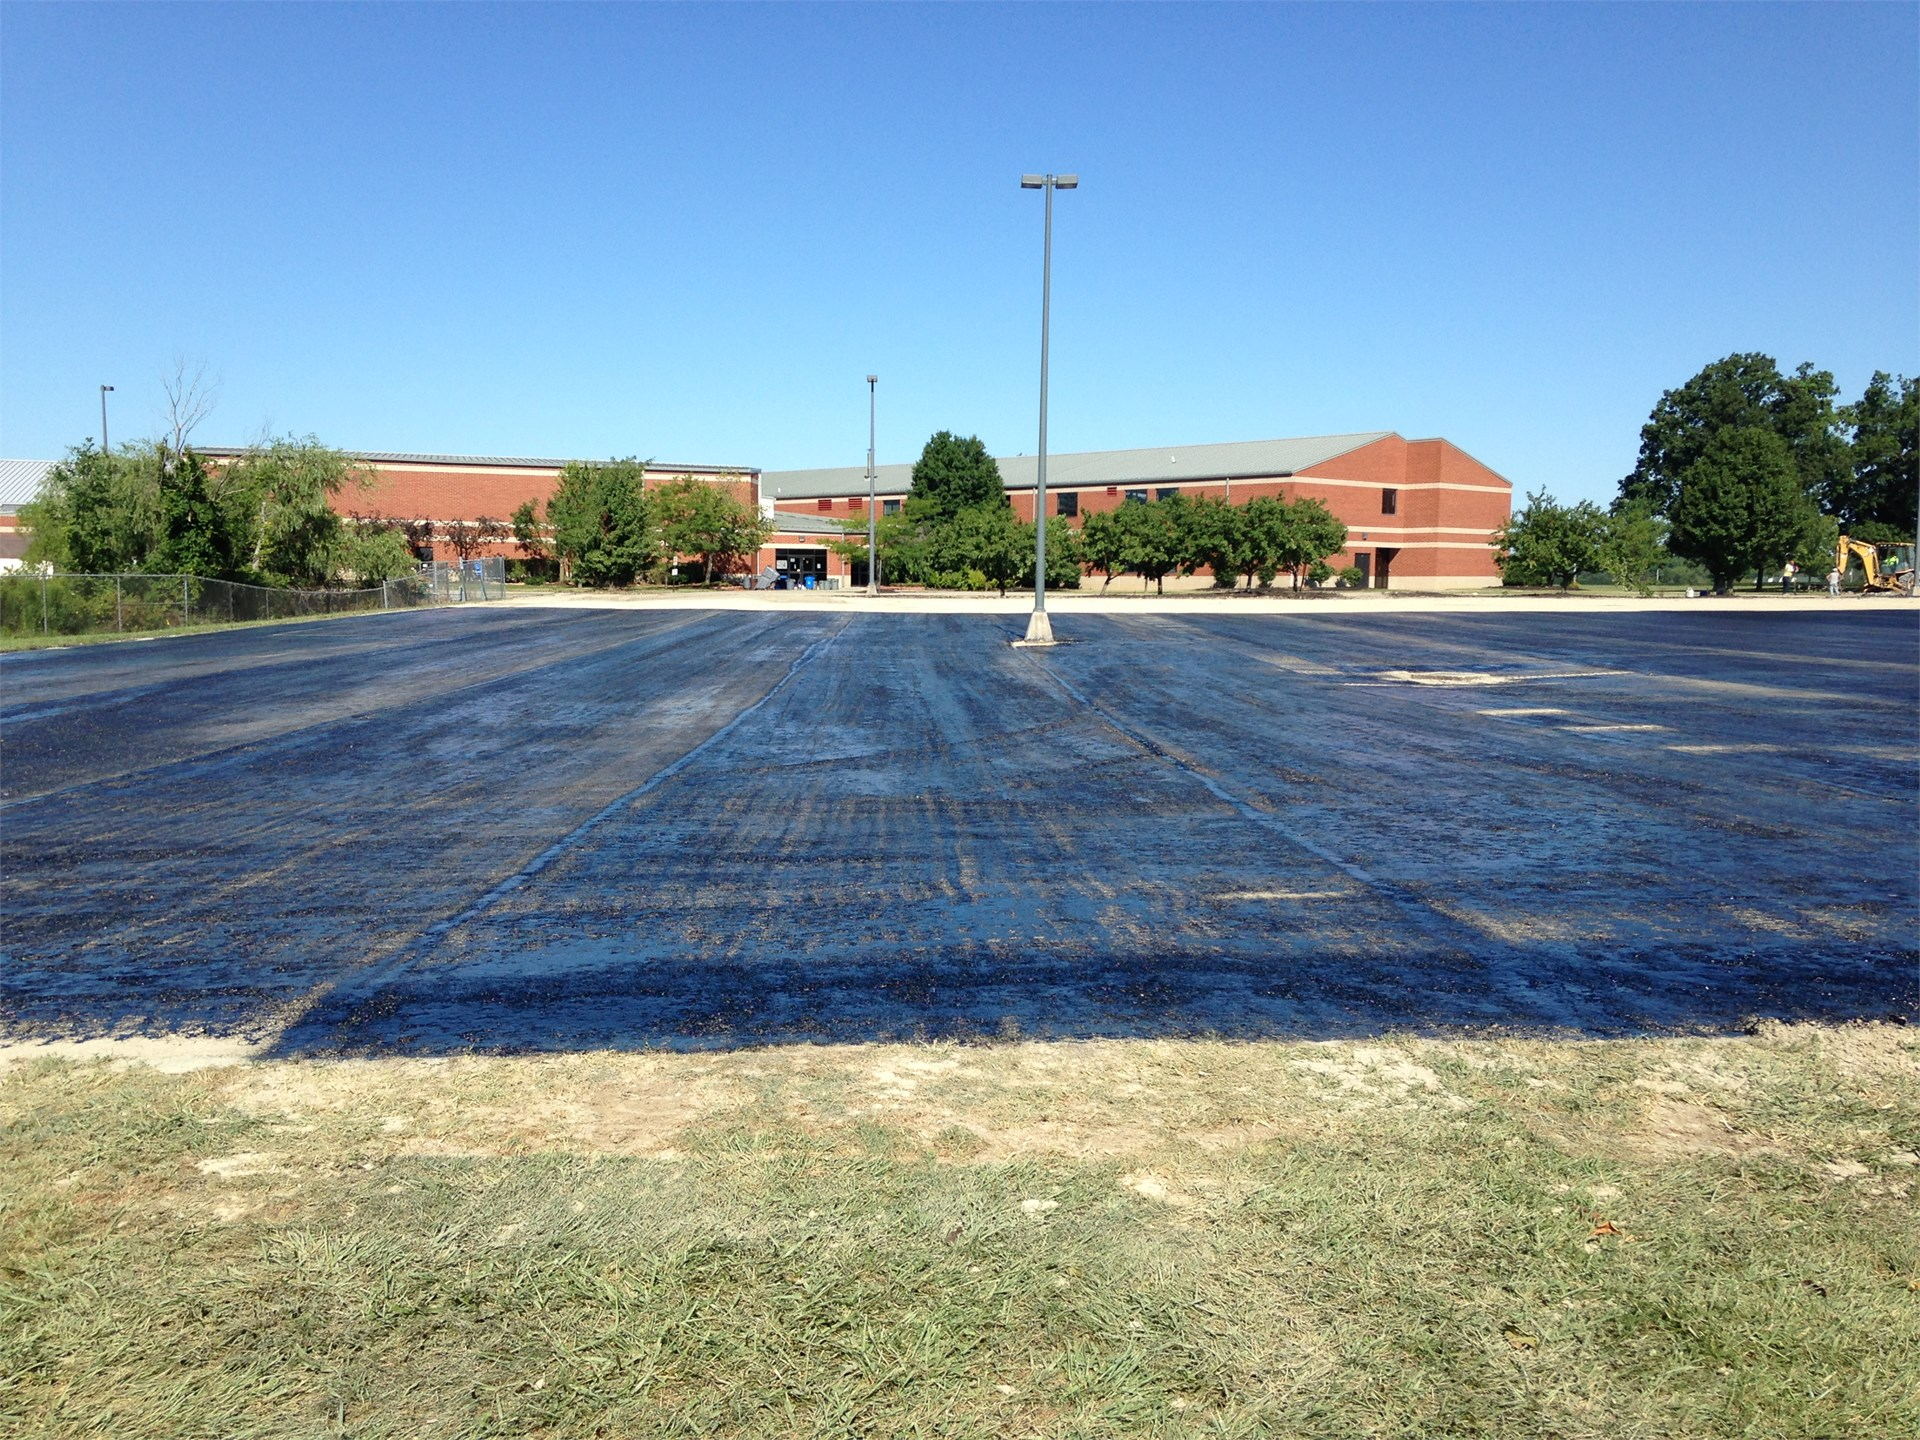 BREC Lot with Cure Coat being applied for Asphalt